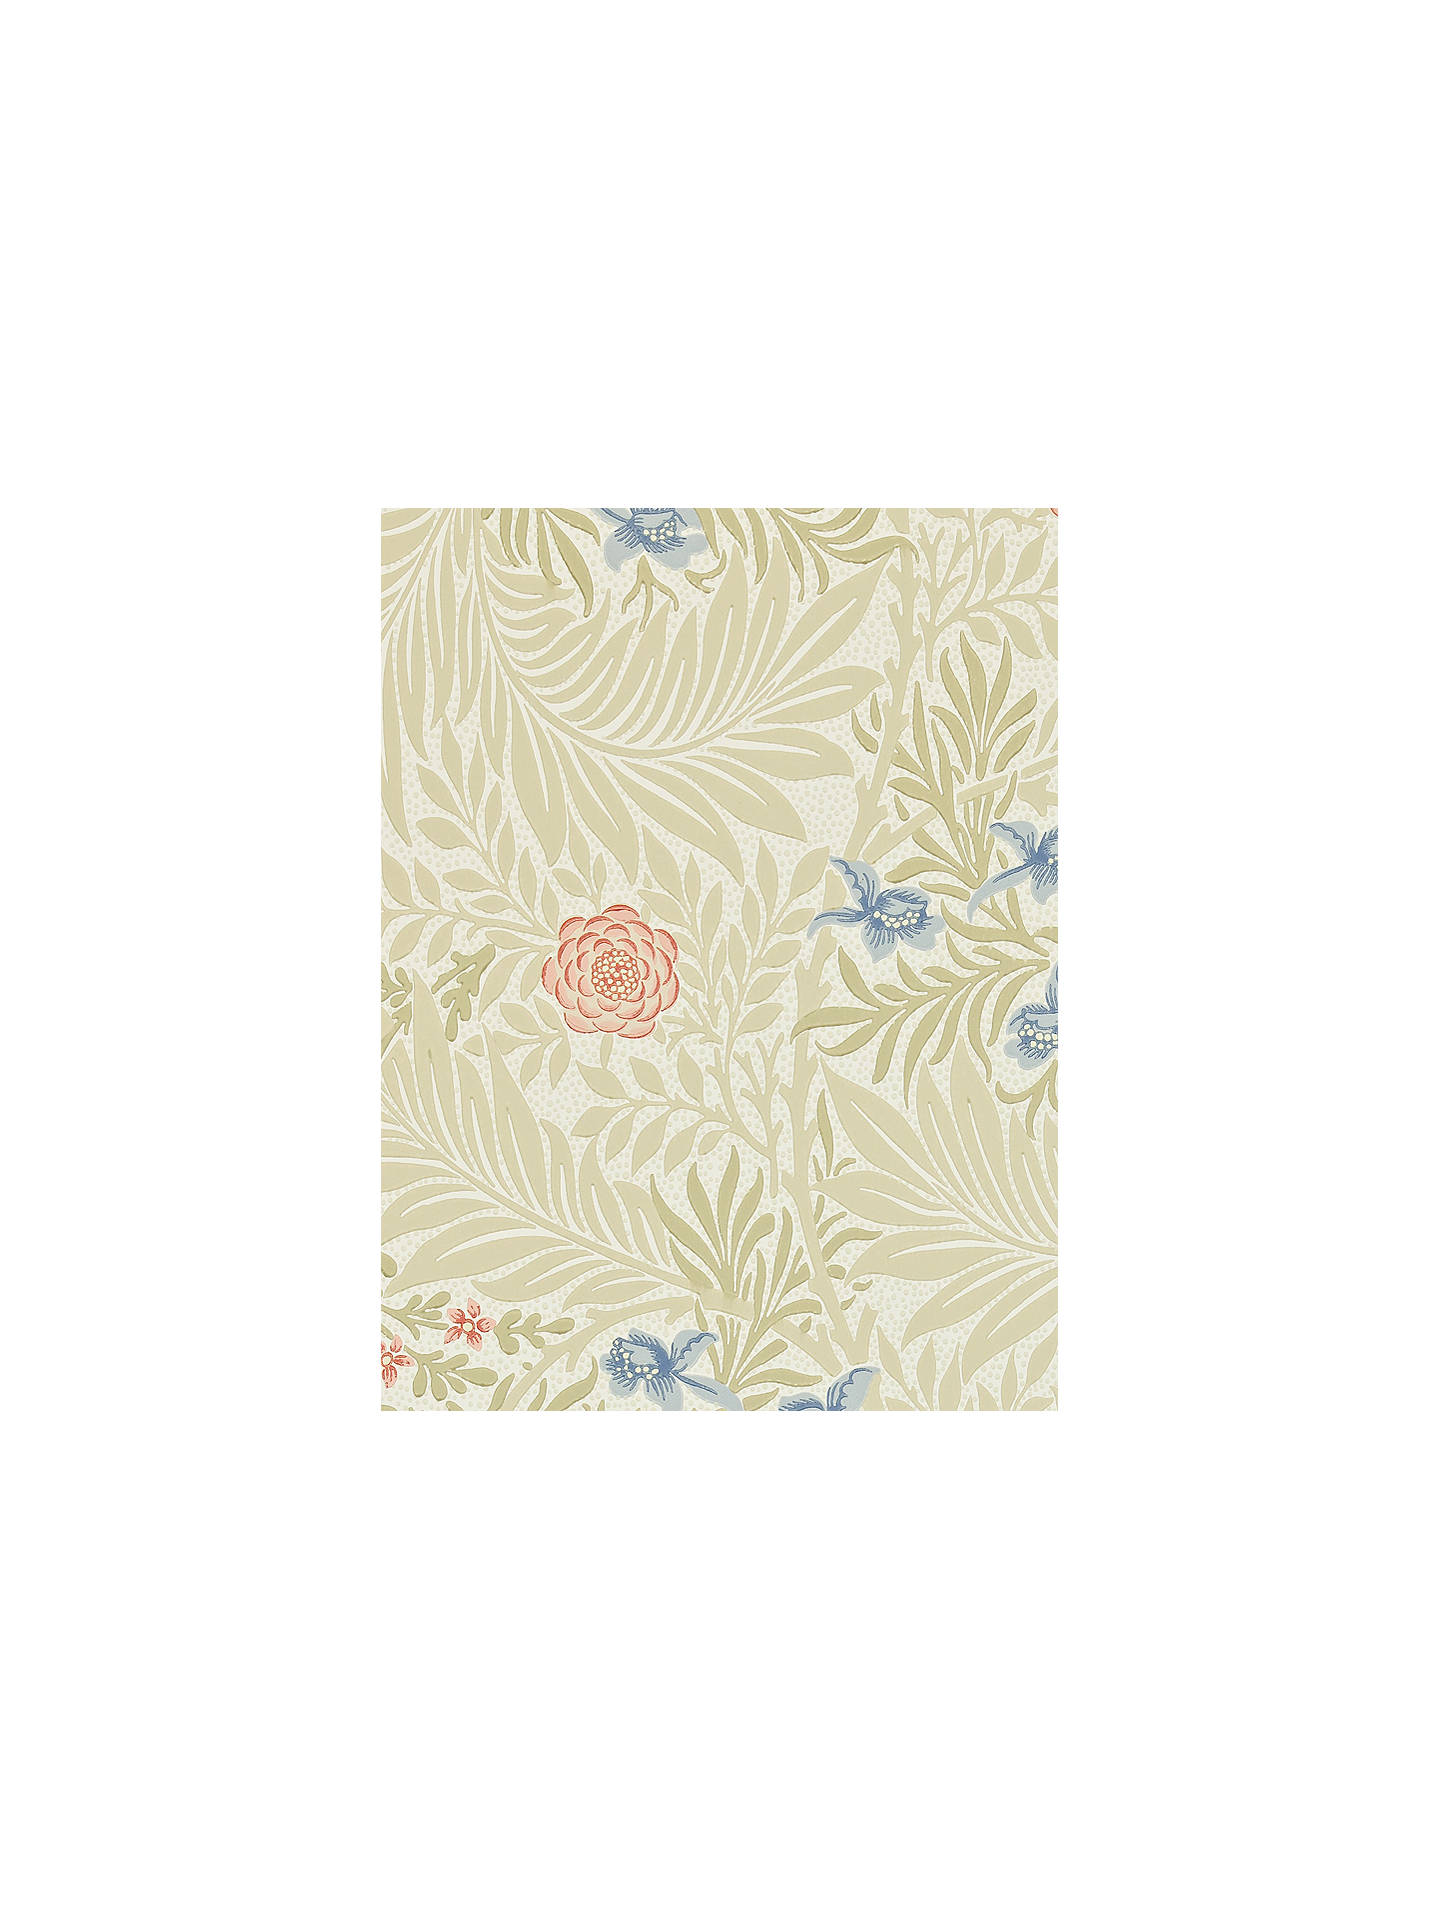 Bird Larkspur Wallpaper, 212557 Online at johnlewis.com